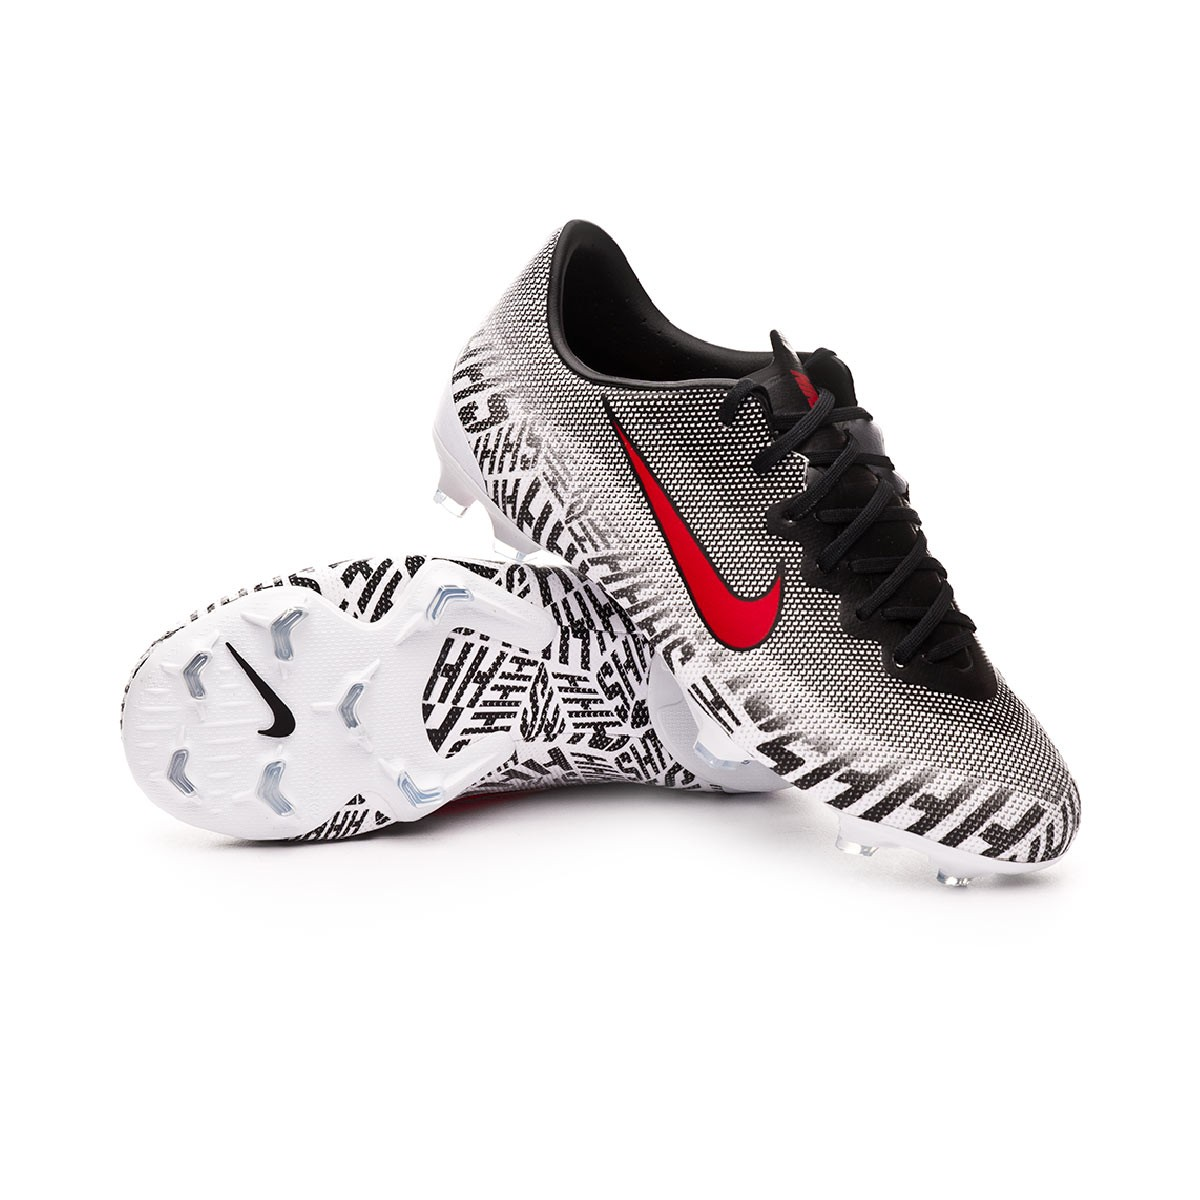 3dbff1f55 Football Boots Nike Kids Mercurial Vapor XII Elite Neymar Jr FG  White-Challenge red-Black - Football store Fútbol Emotion